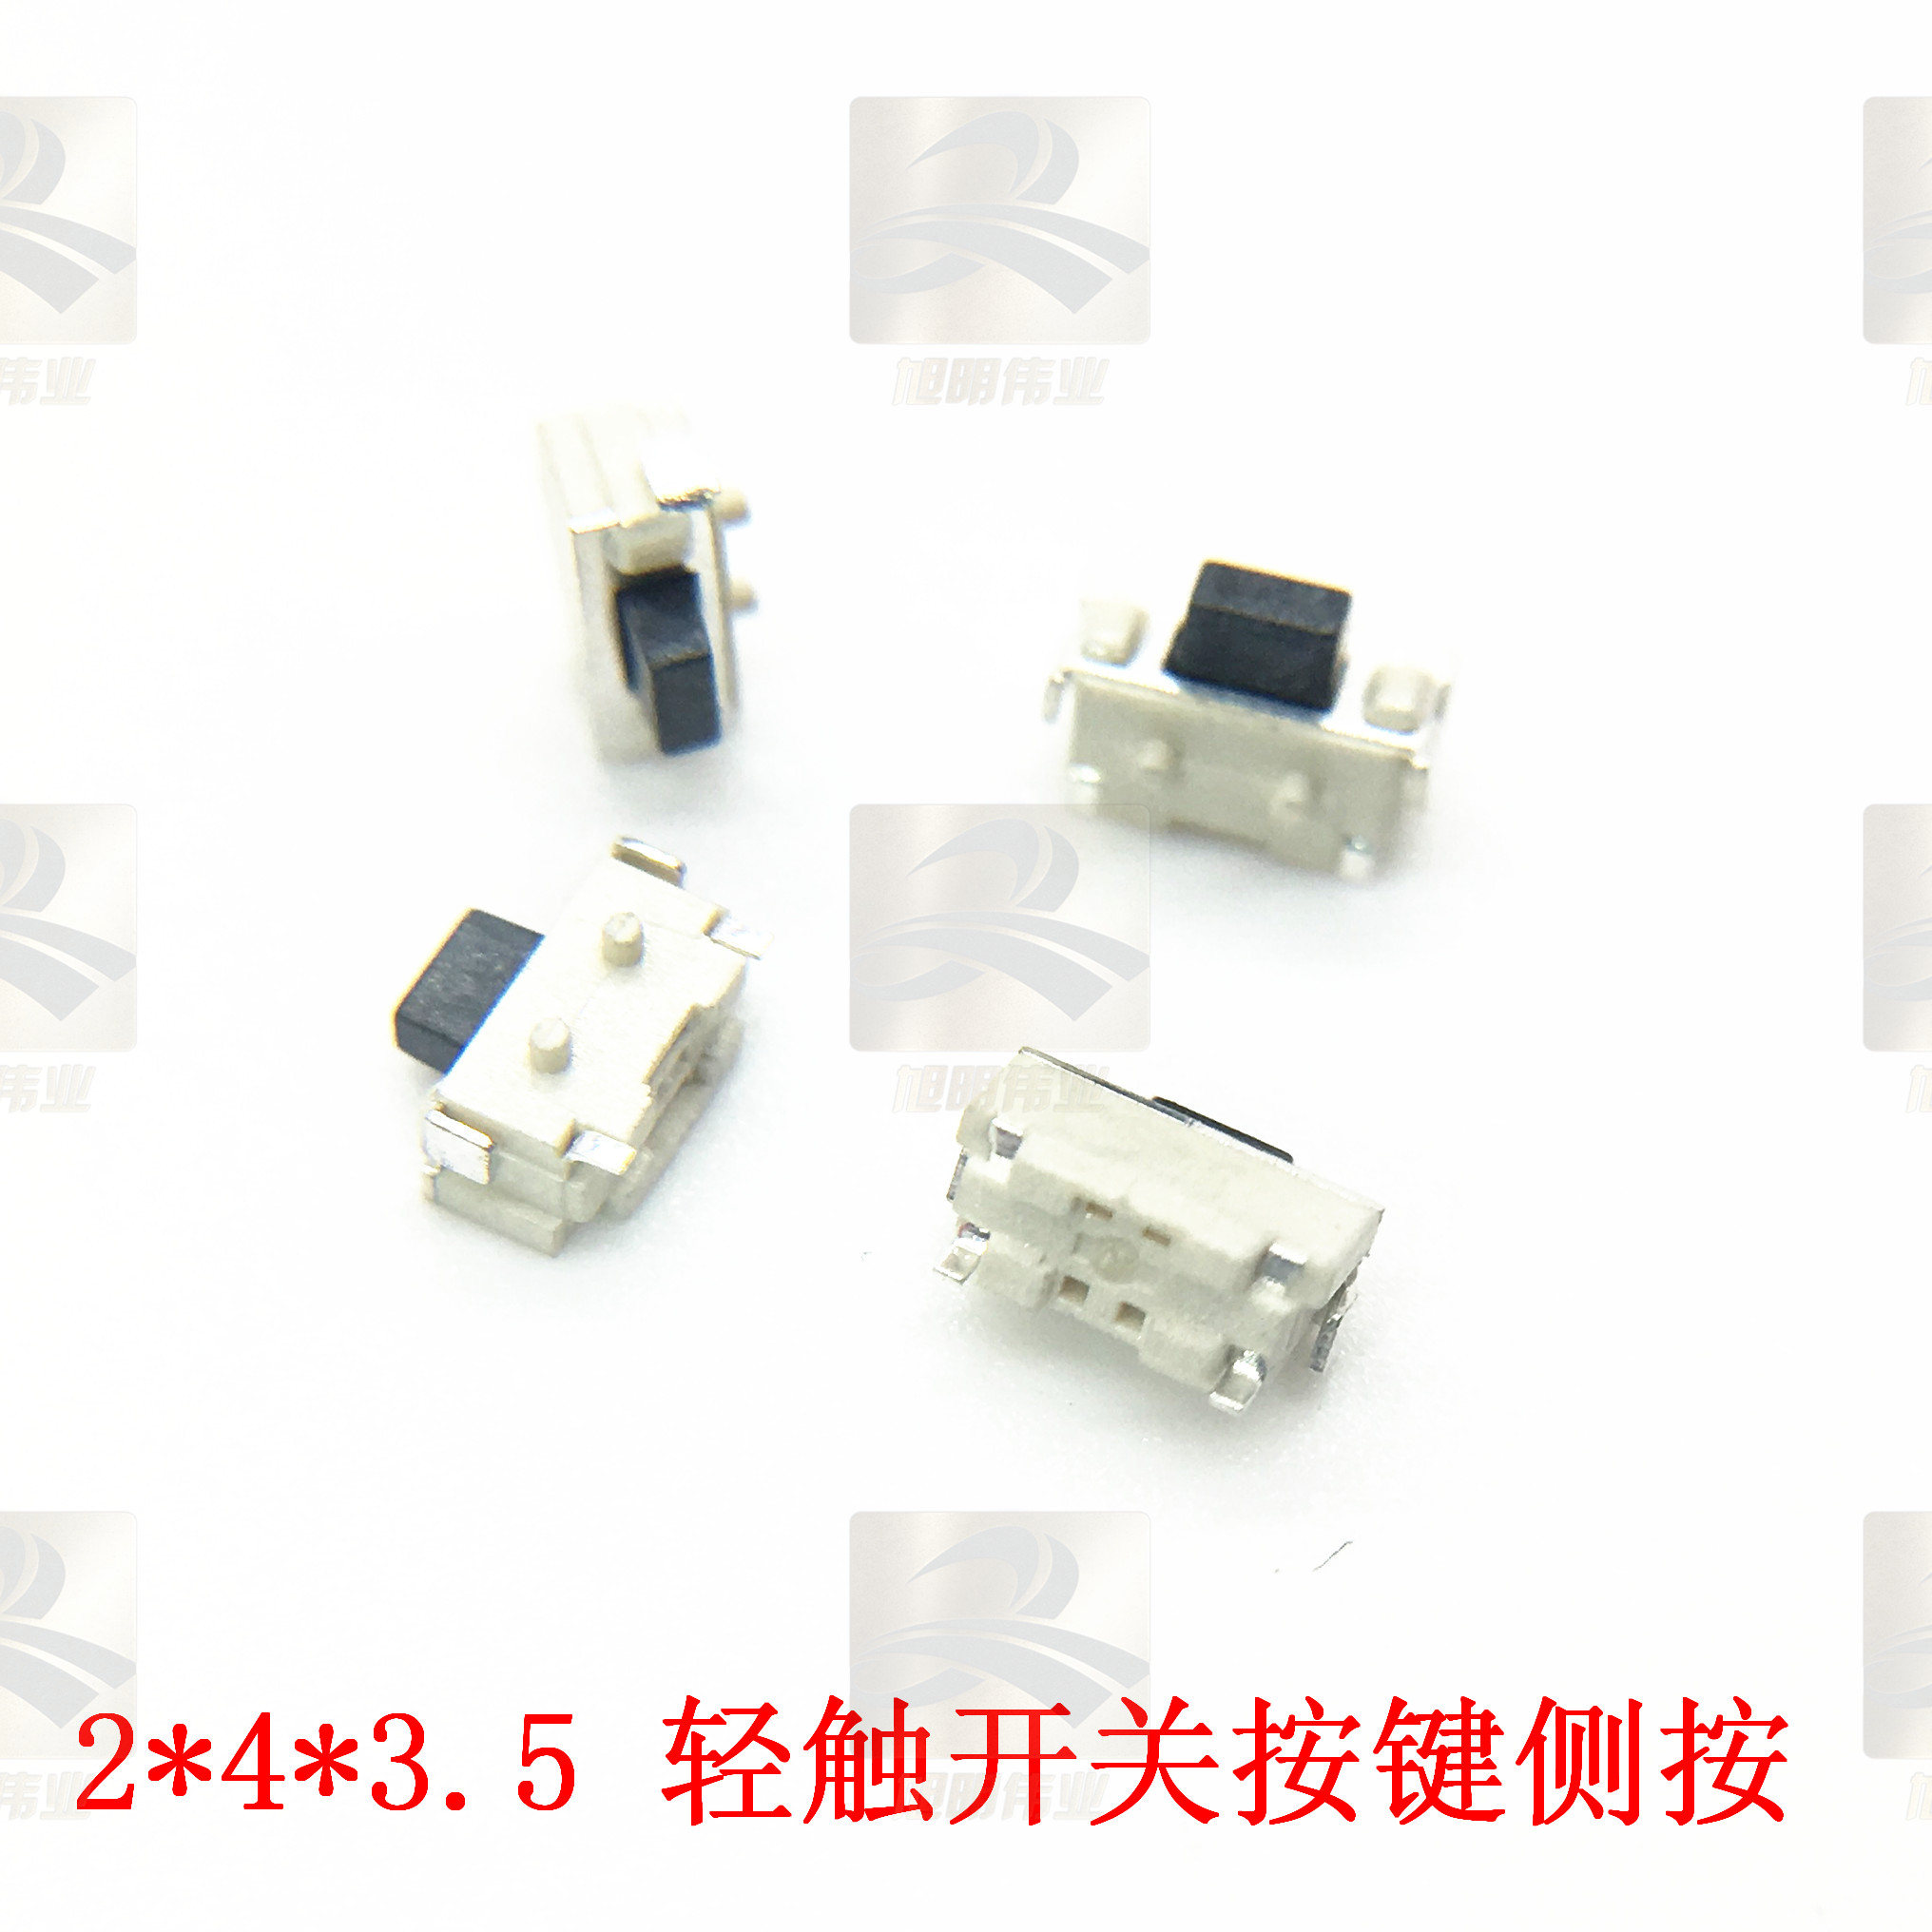 Touch the switch 2 * 4 * 3.5 key side press the small side key MP3 accessories MP4 MP5 small Beibei 2x4